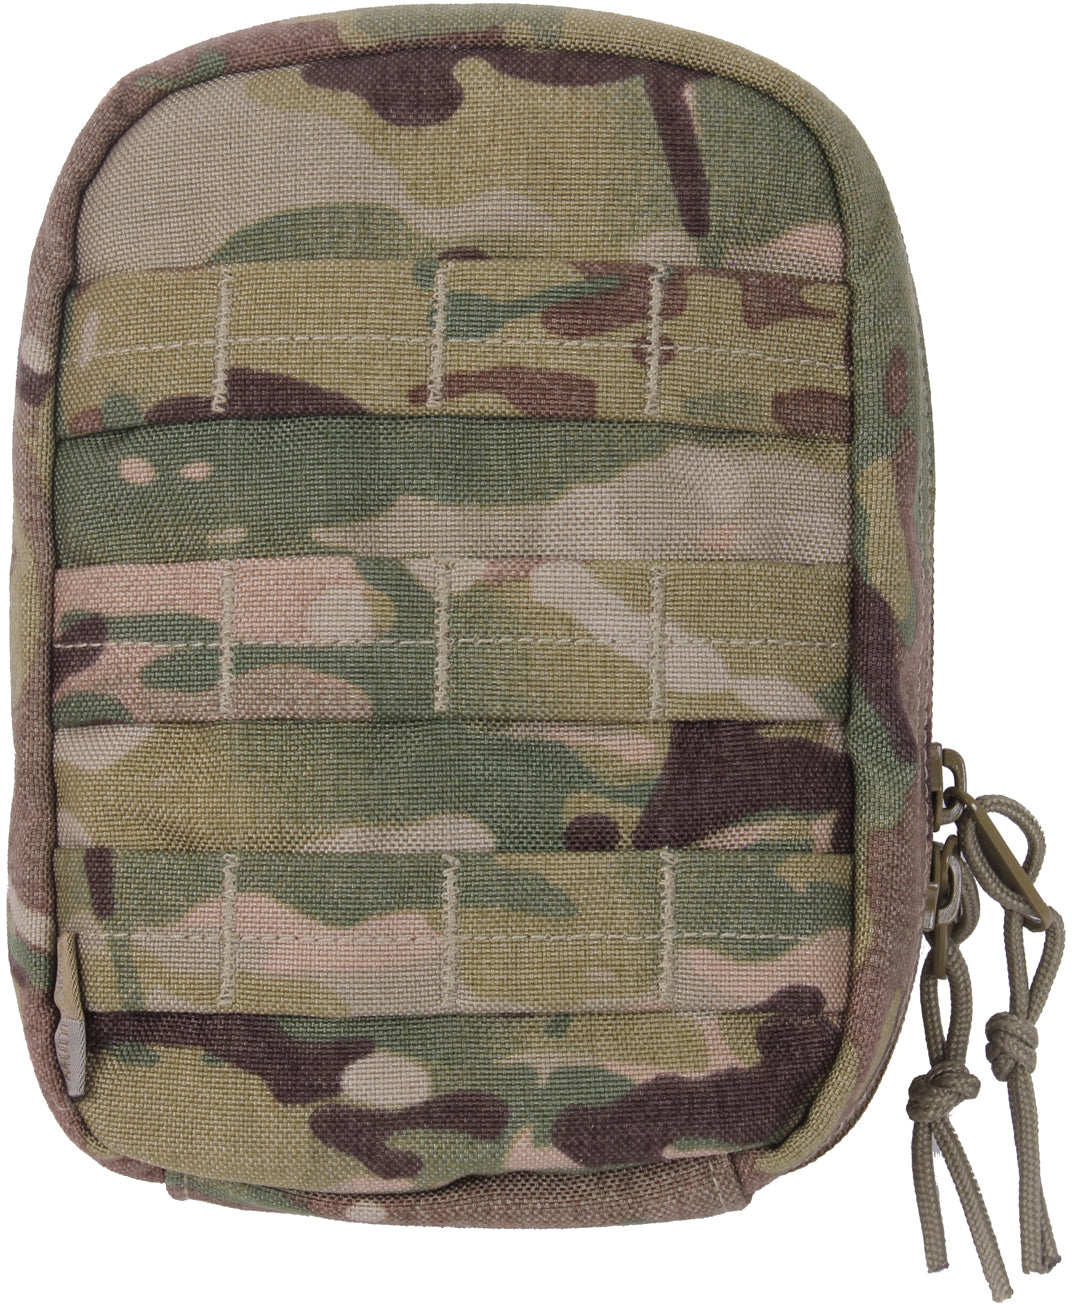 Multi Cam - Tactical MOLLE Compatible First Aid Pouch